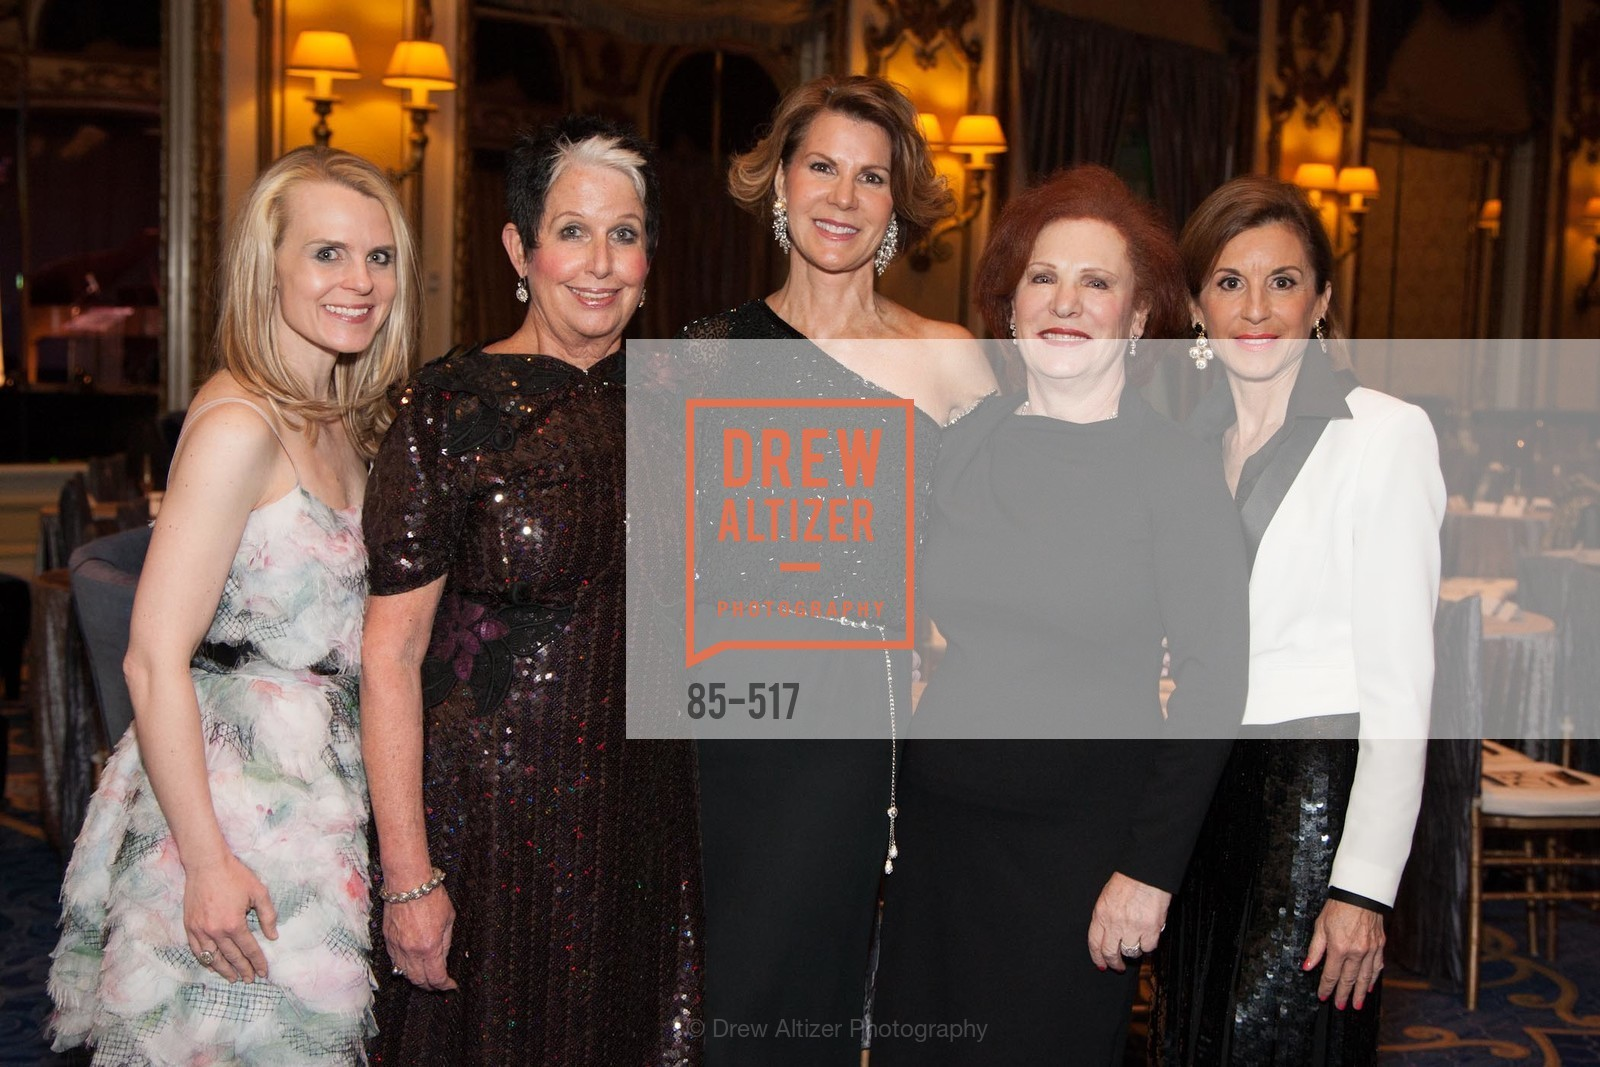 Jane Mudge, Karen Kubin, Katie Jarman, Romana Bracco, Marsha Monro, SAN FRANCISCO OPERA GUILD Presents POPera, US. US, April 10th, 2014,Drew Altizer, Drew Altizer Photography, full-service agency, private events, San Francisco photographer, photographer california